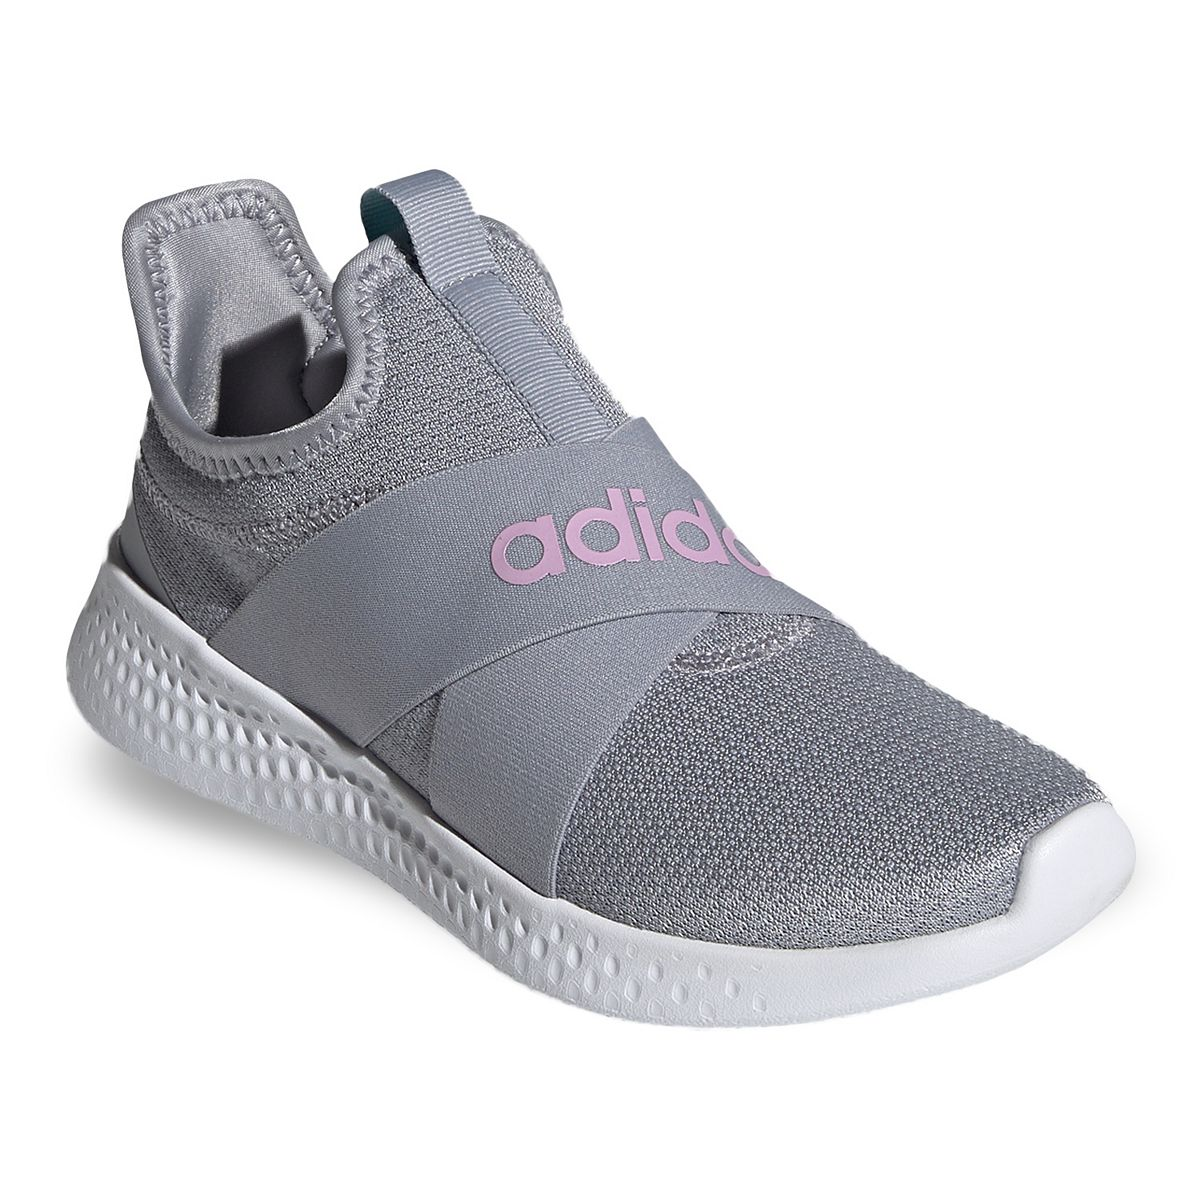 .99 Adidas Cloudfoam Puremotion Adapt Women's Running Shoes at Kohl's!